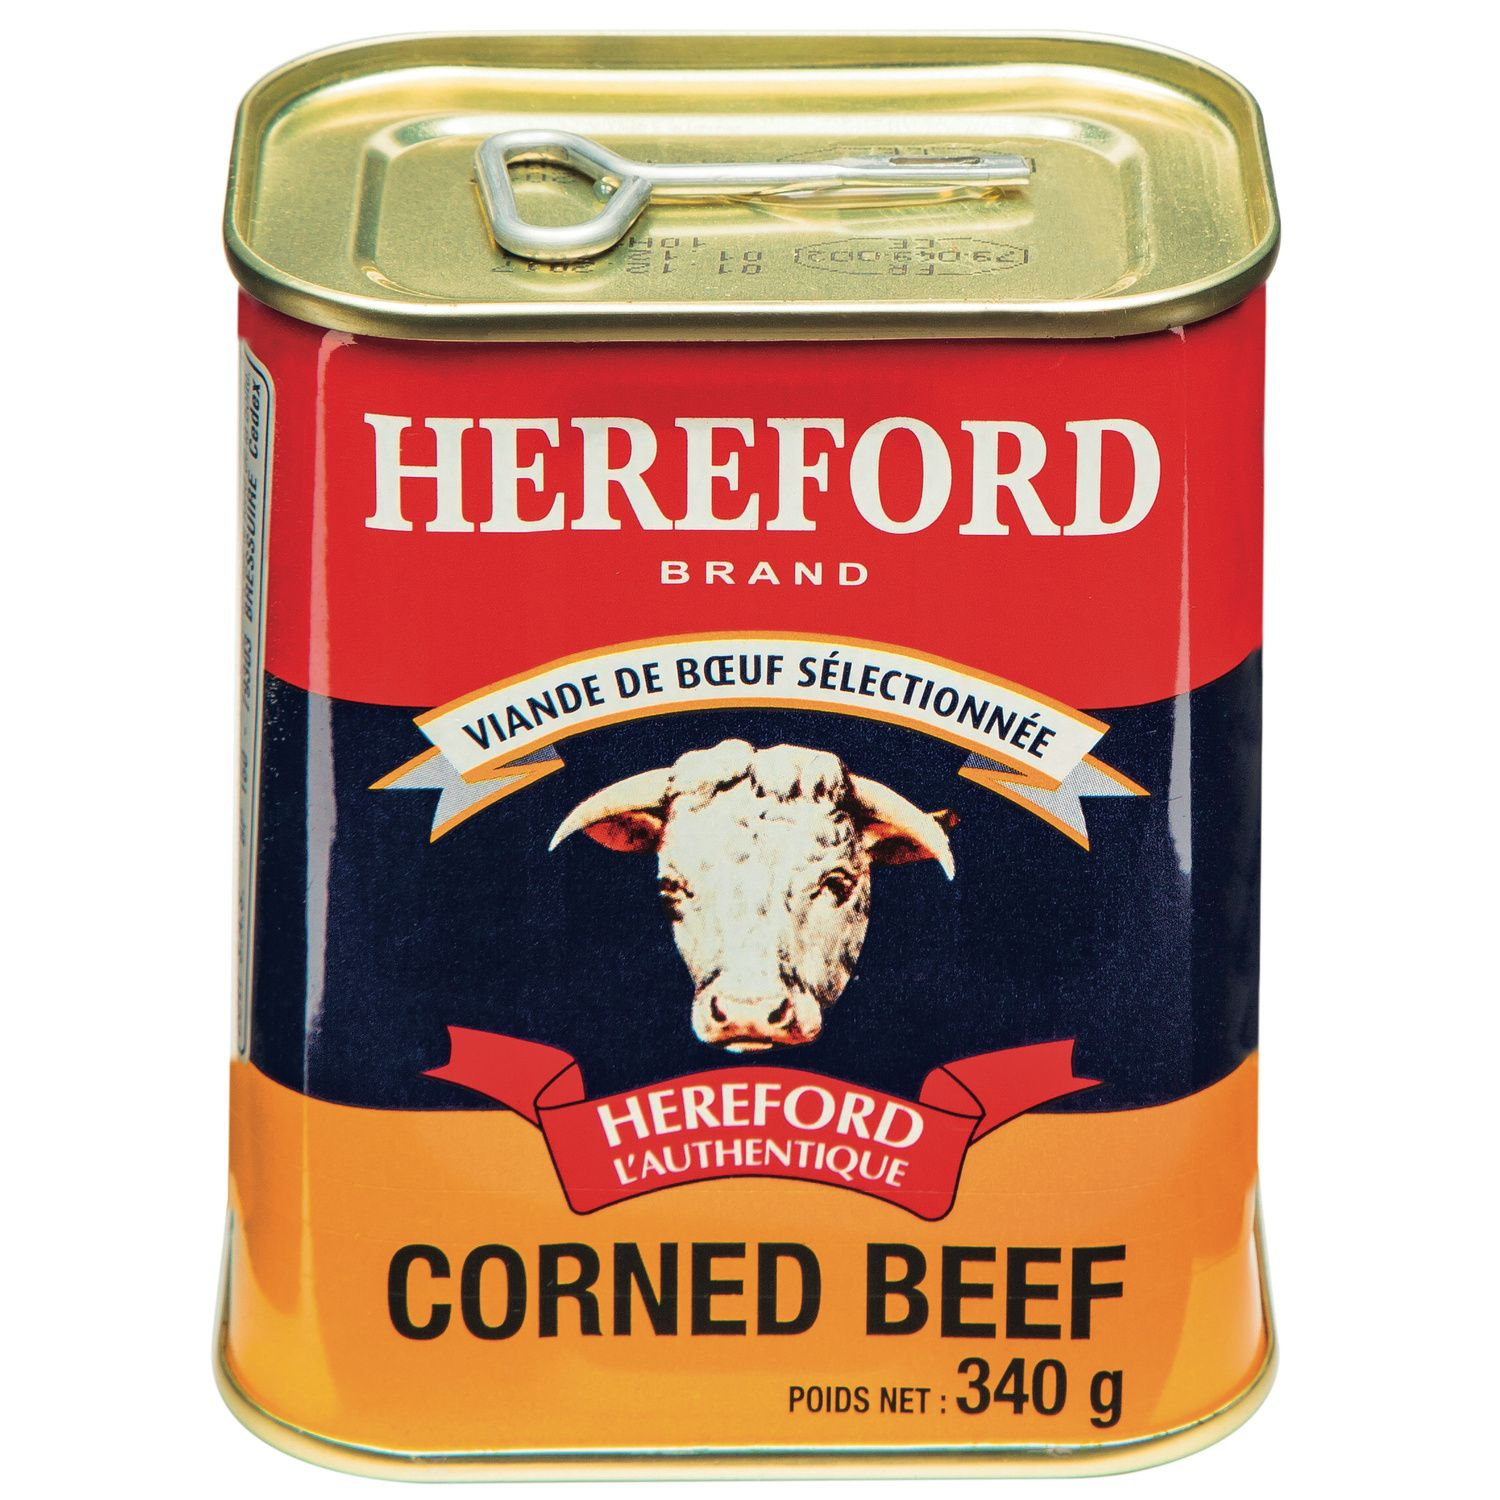 pare corned beef hereford corned beef